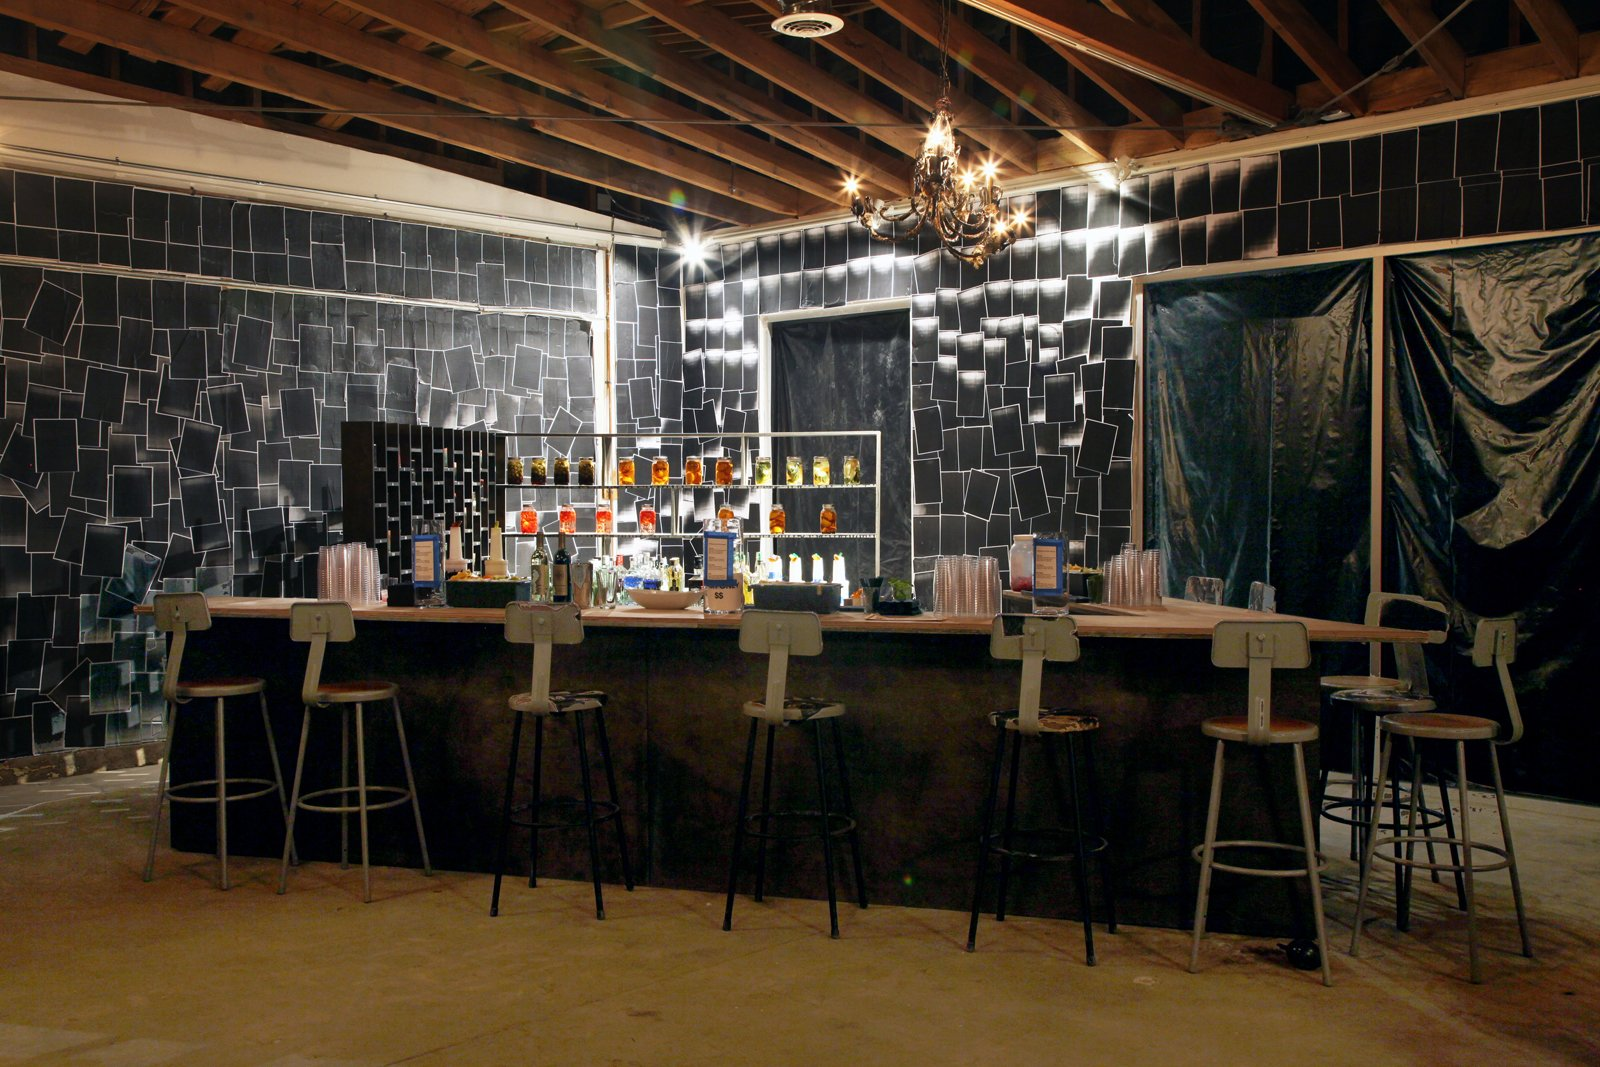 A past installation by Liz Glynn, BLACKBOX (Bar) in 2012. Stained wood, one hundred unique numbered glazed ceramic mugs, 11 stools, Xerox copies, and acrylic. Photograph by Calvin LeeCourtesy of LAXART and the Getty Research Institute.  Photo 3 of 6 in Frieze Art Fair: 7 Things Not to Be Missed